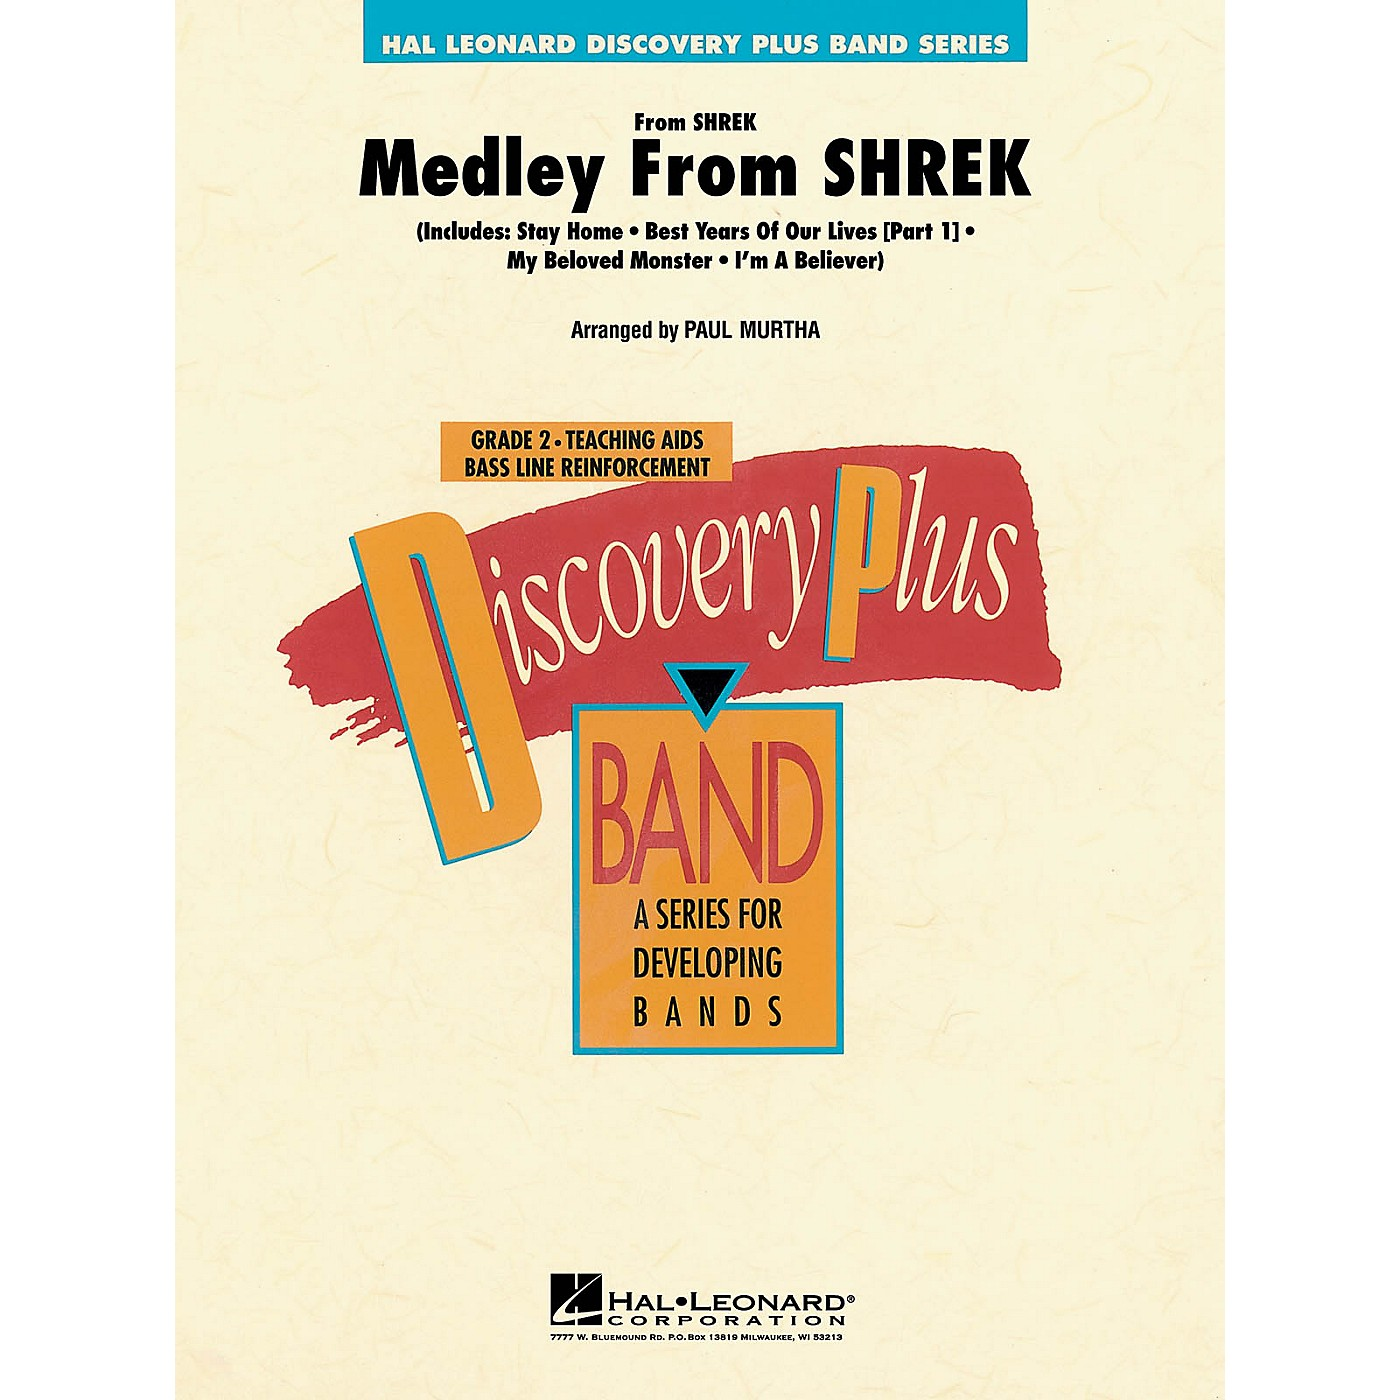 Hal Leonard Medley from Shrek - Discovery Plus Concert Band Series Level 2 arranged by Paul Murtha thumbnail